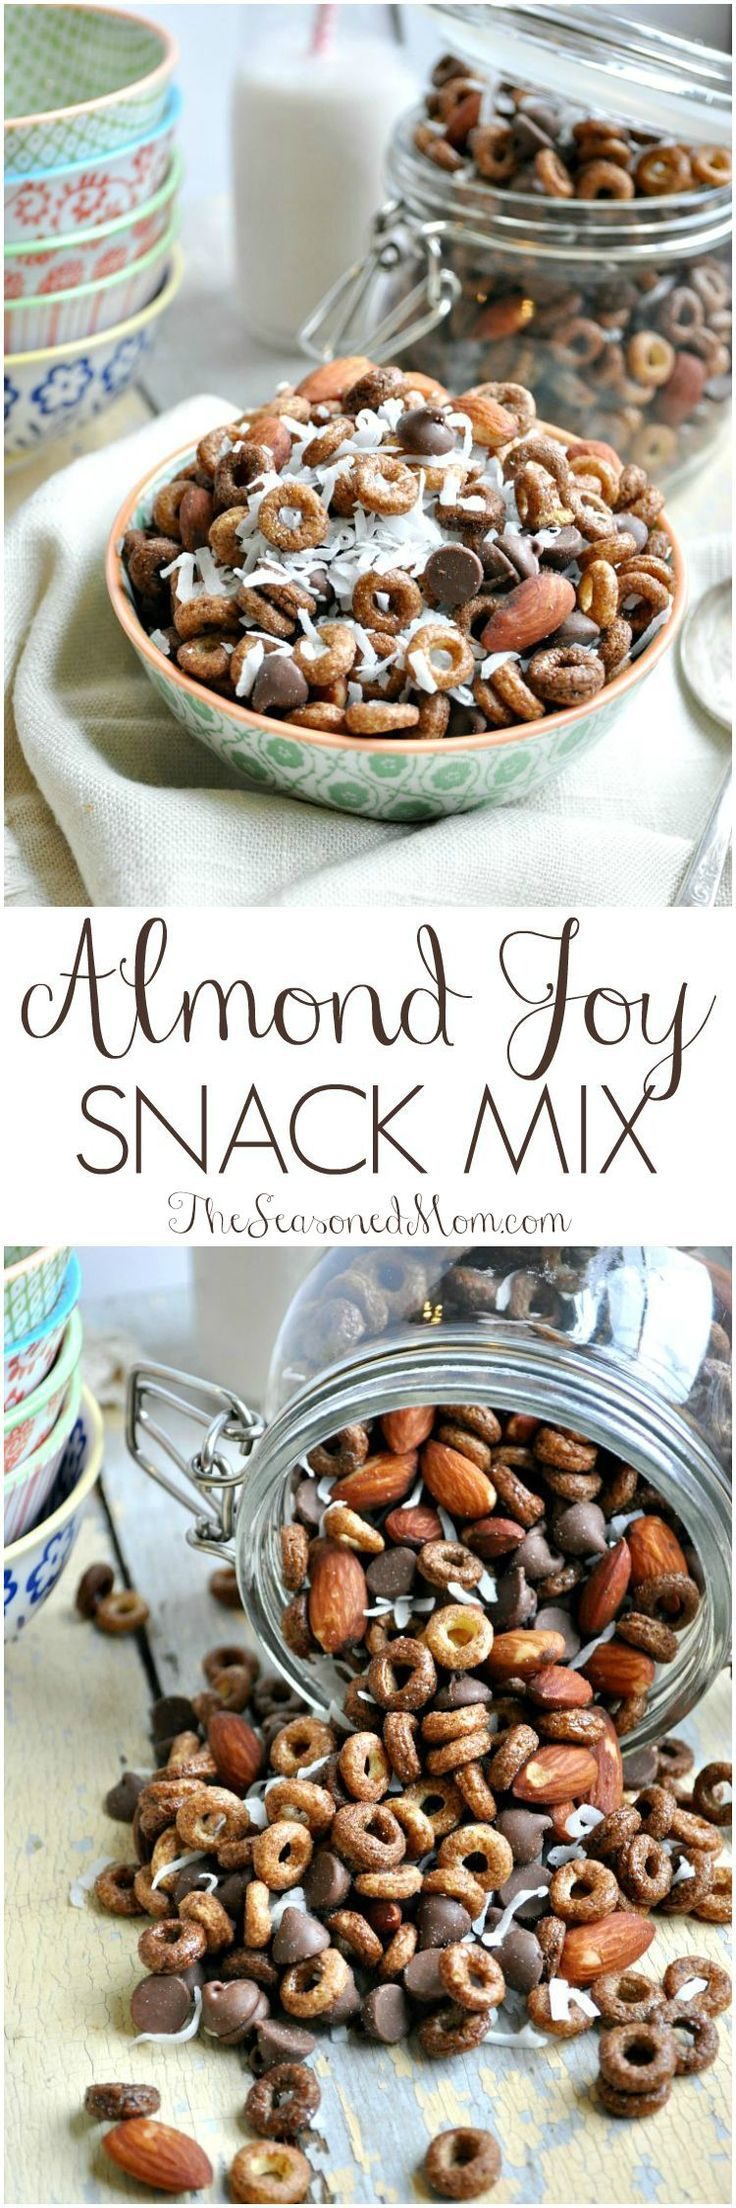 best travel images on pinterest snacks rezepte and snack mix